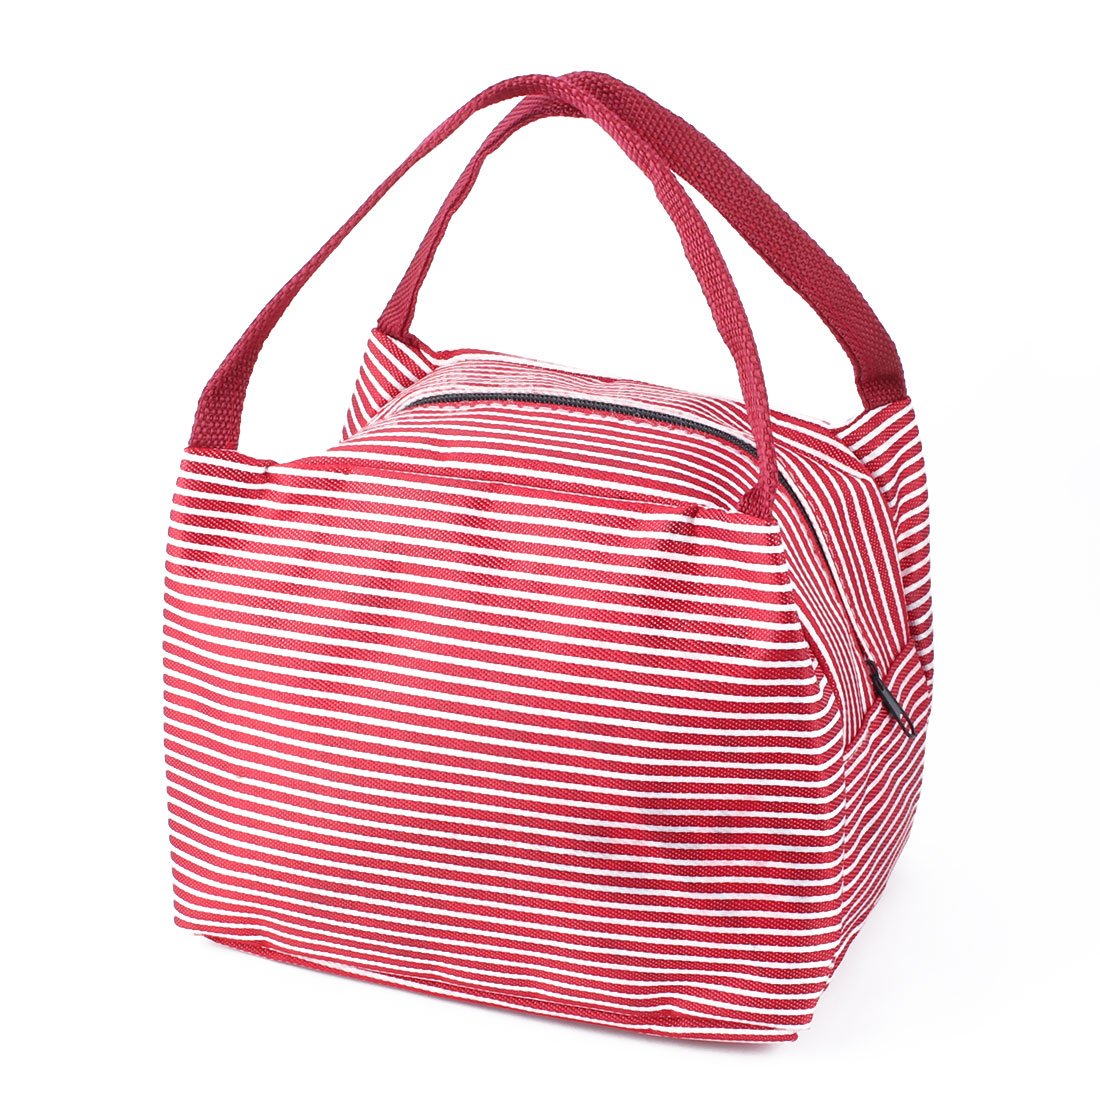 Outdoor Portable Striped Insulated Thermal Cooler Lunch Tote Bag Picnic Container Red